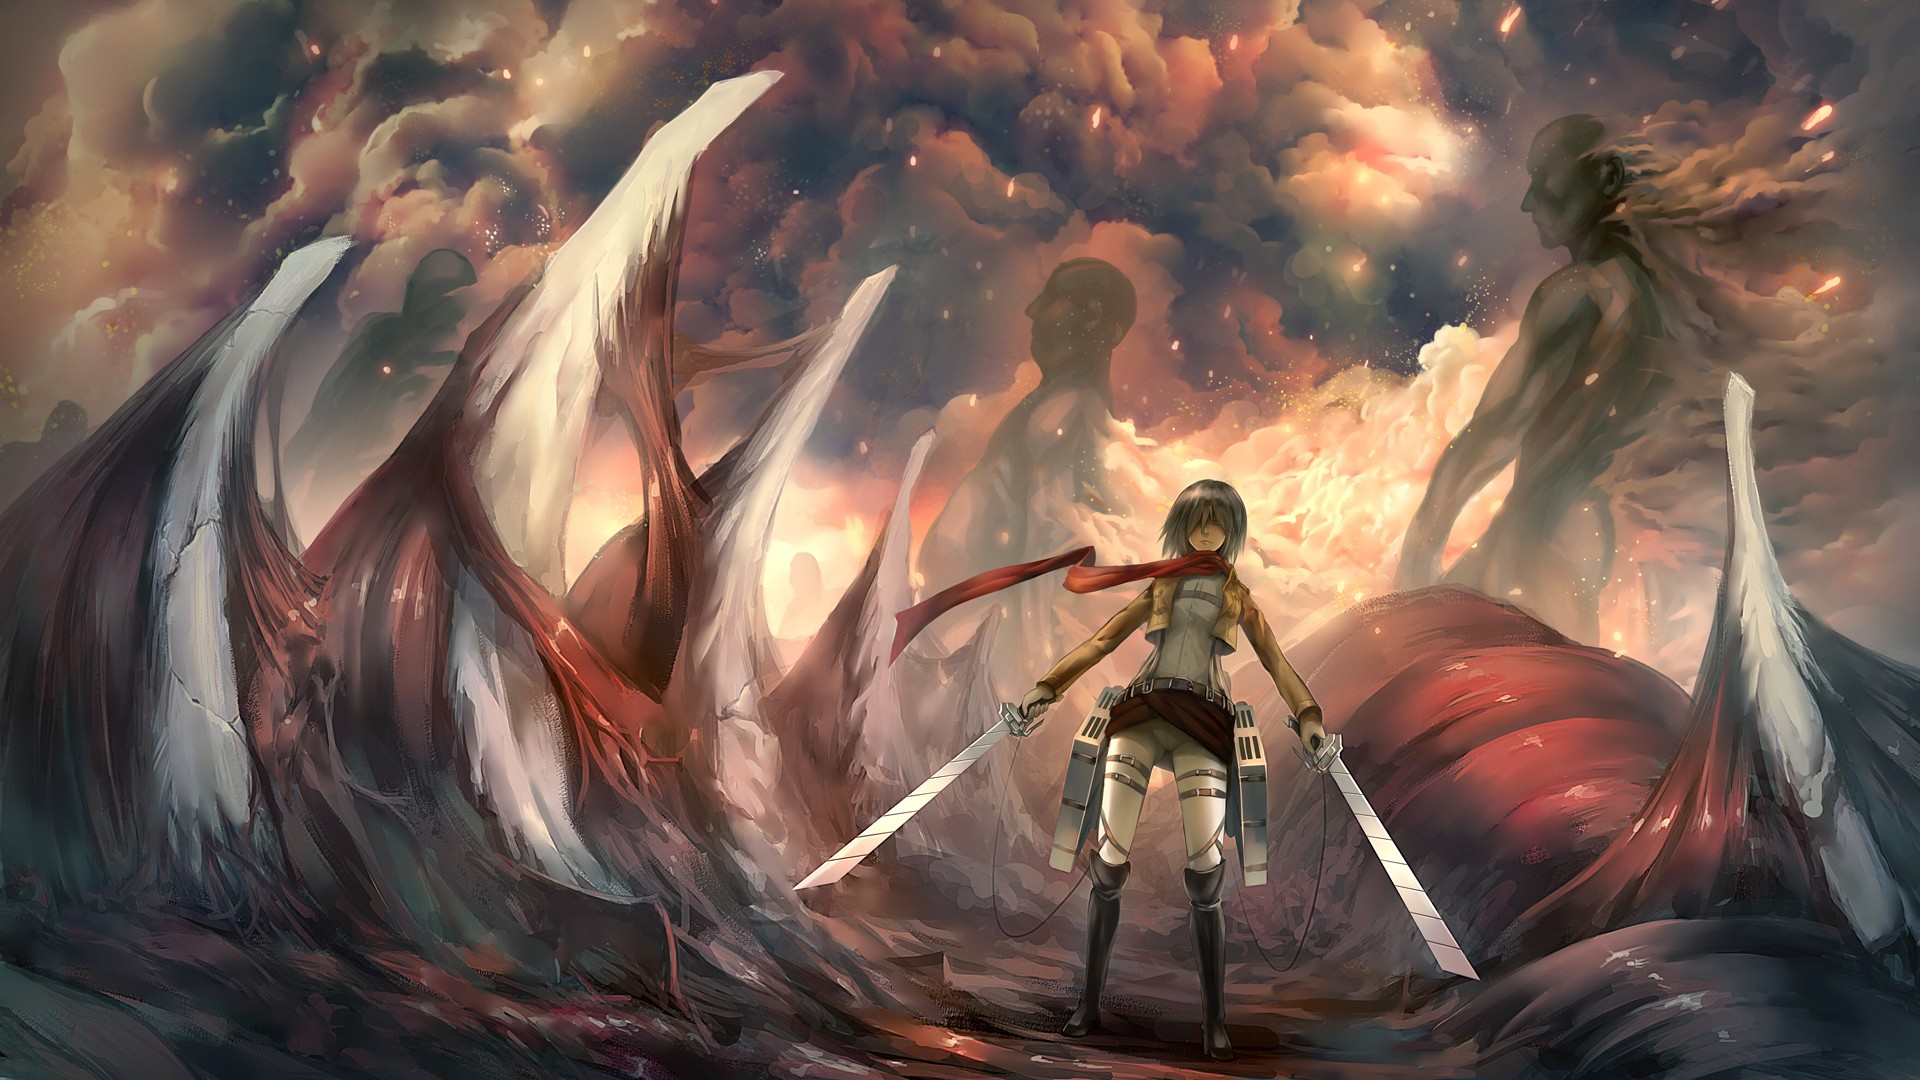 Download attack on titan wallpaper Gd Levi [1920x1080] 46 1920x1080